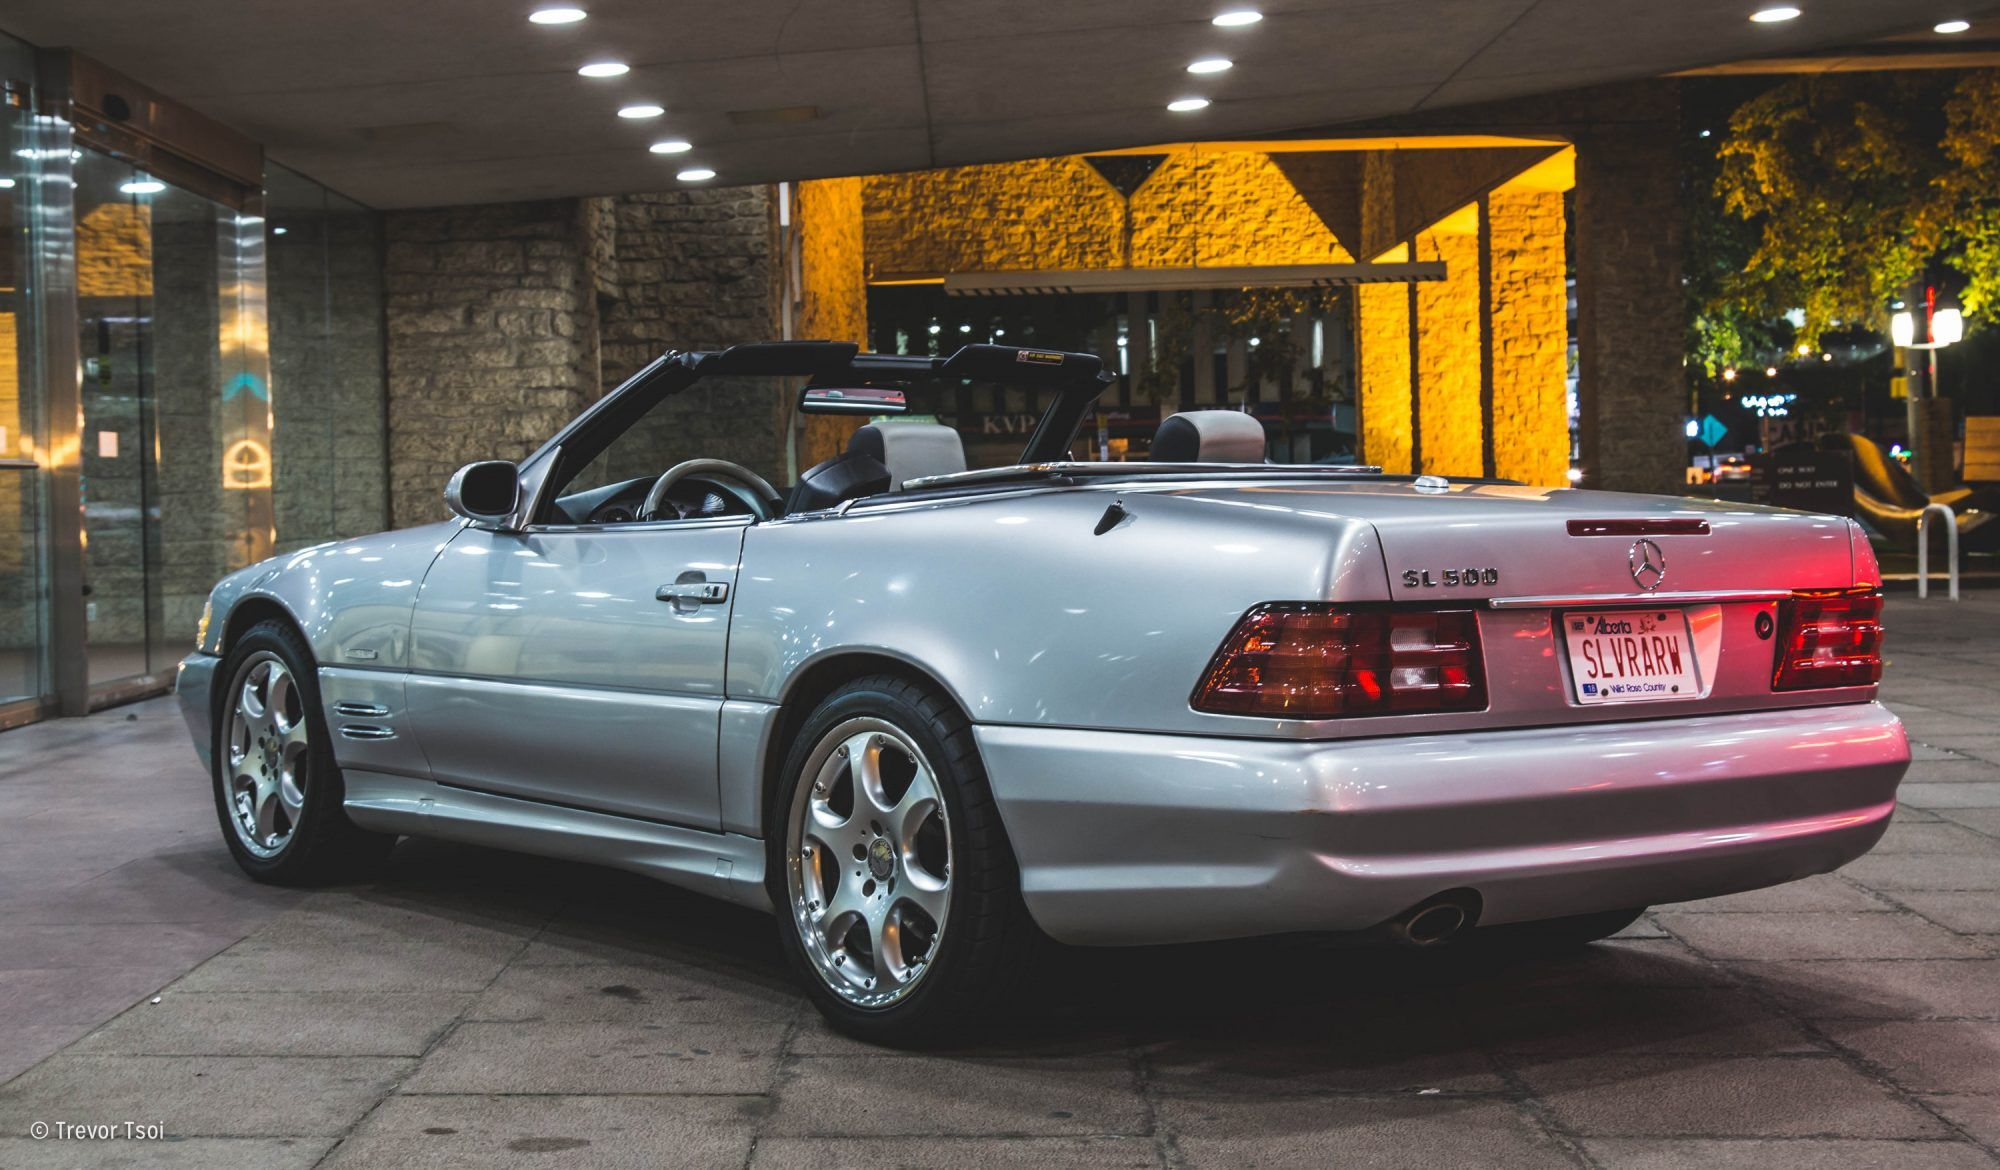 A Childhood Dream Realized My 2002 Mercedes Benz Sl500 Silver Arrow Edition In 2020 Mercedes Benz Benz Mercedes Benz Cars